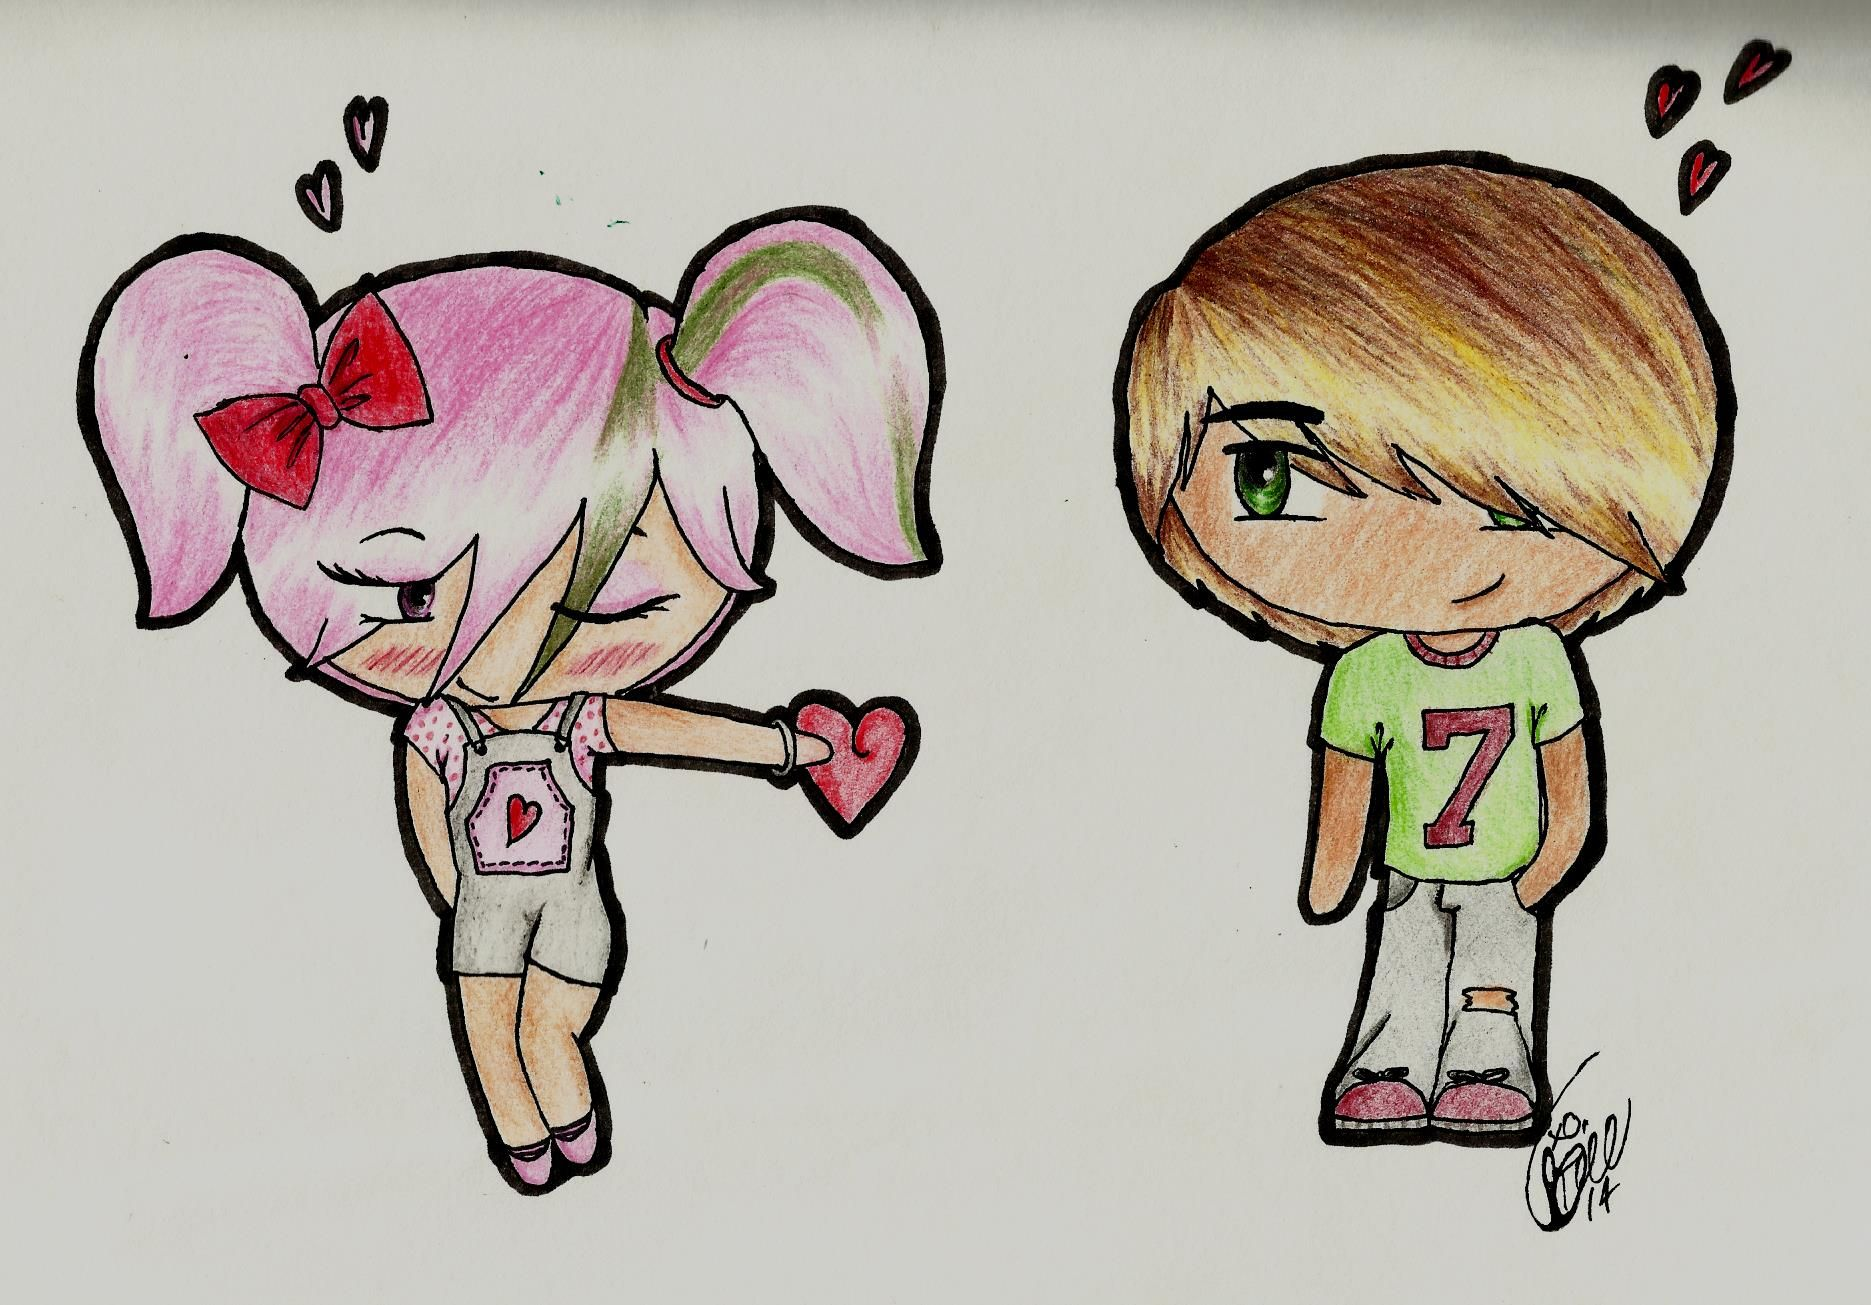 Boy girl chibi anime love cute pink hair red bow heart drawing colored pencil sketch 14 year old bree